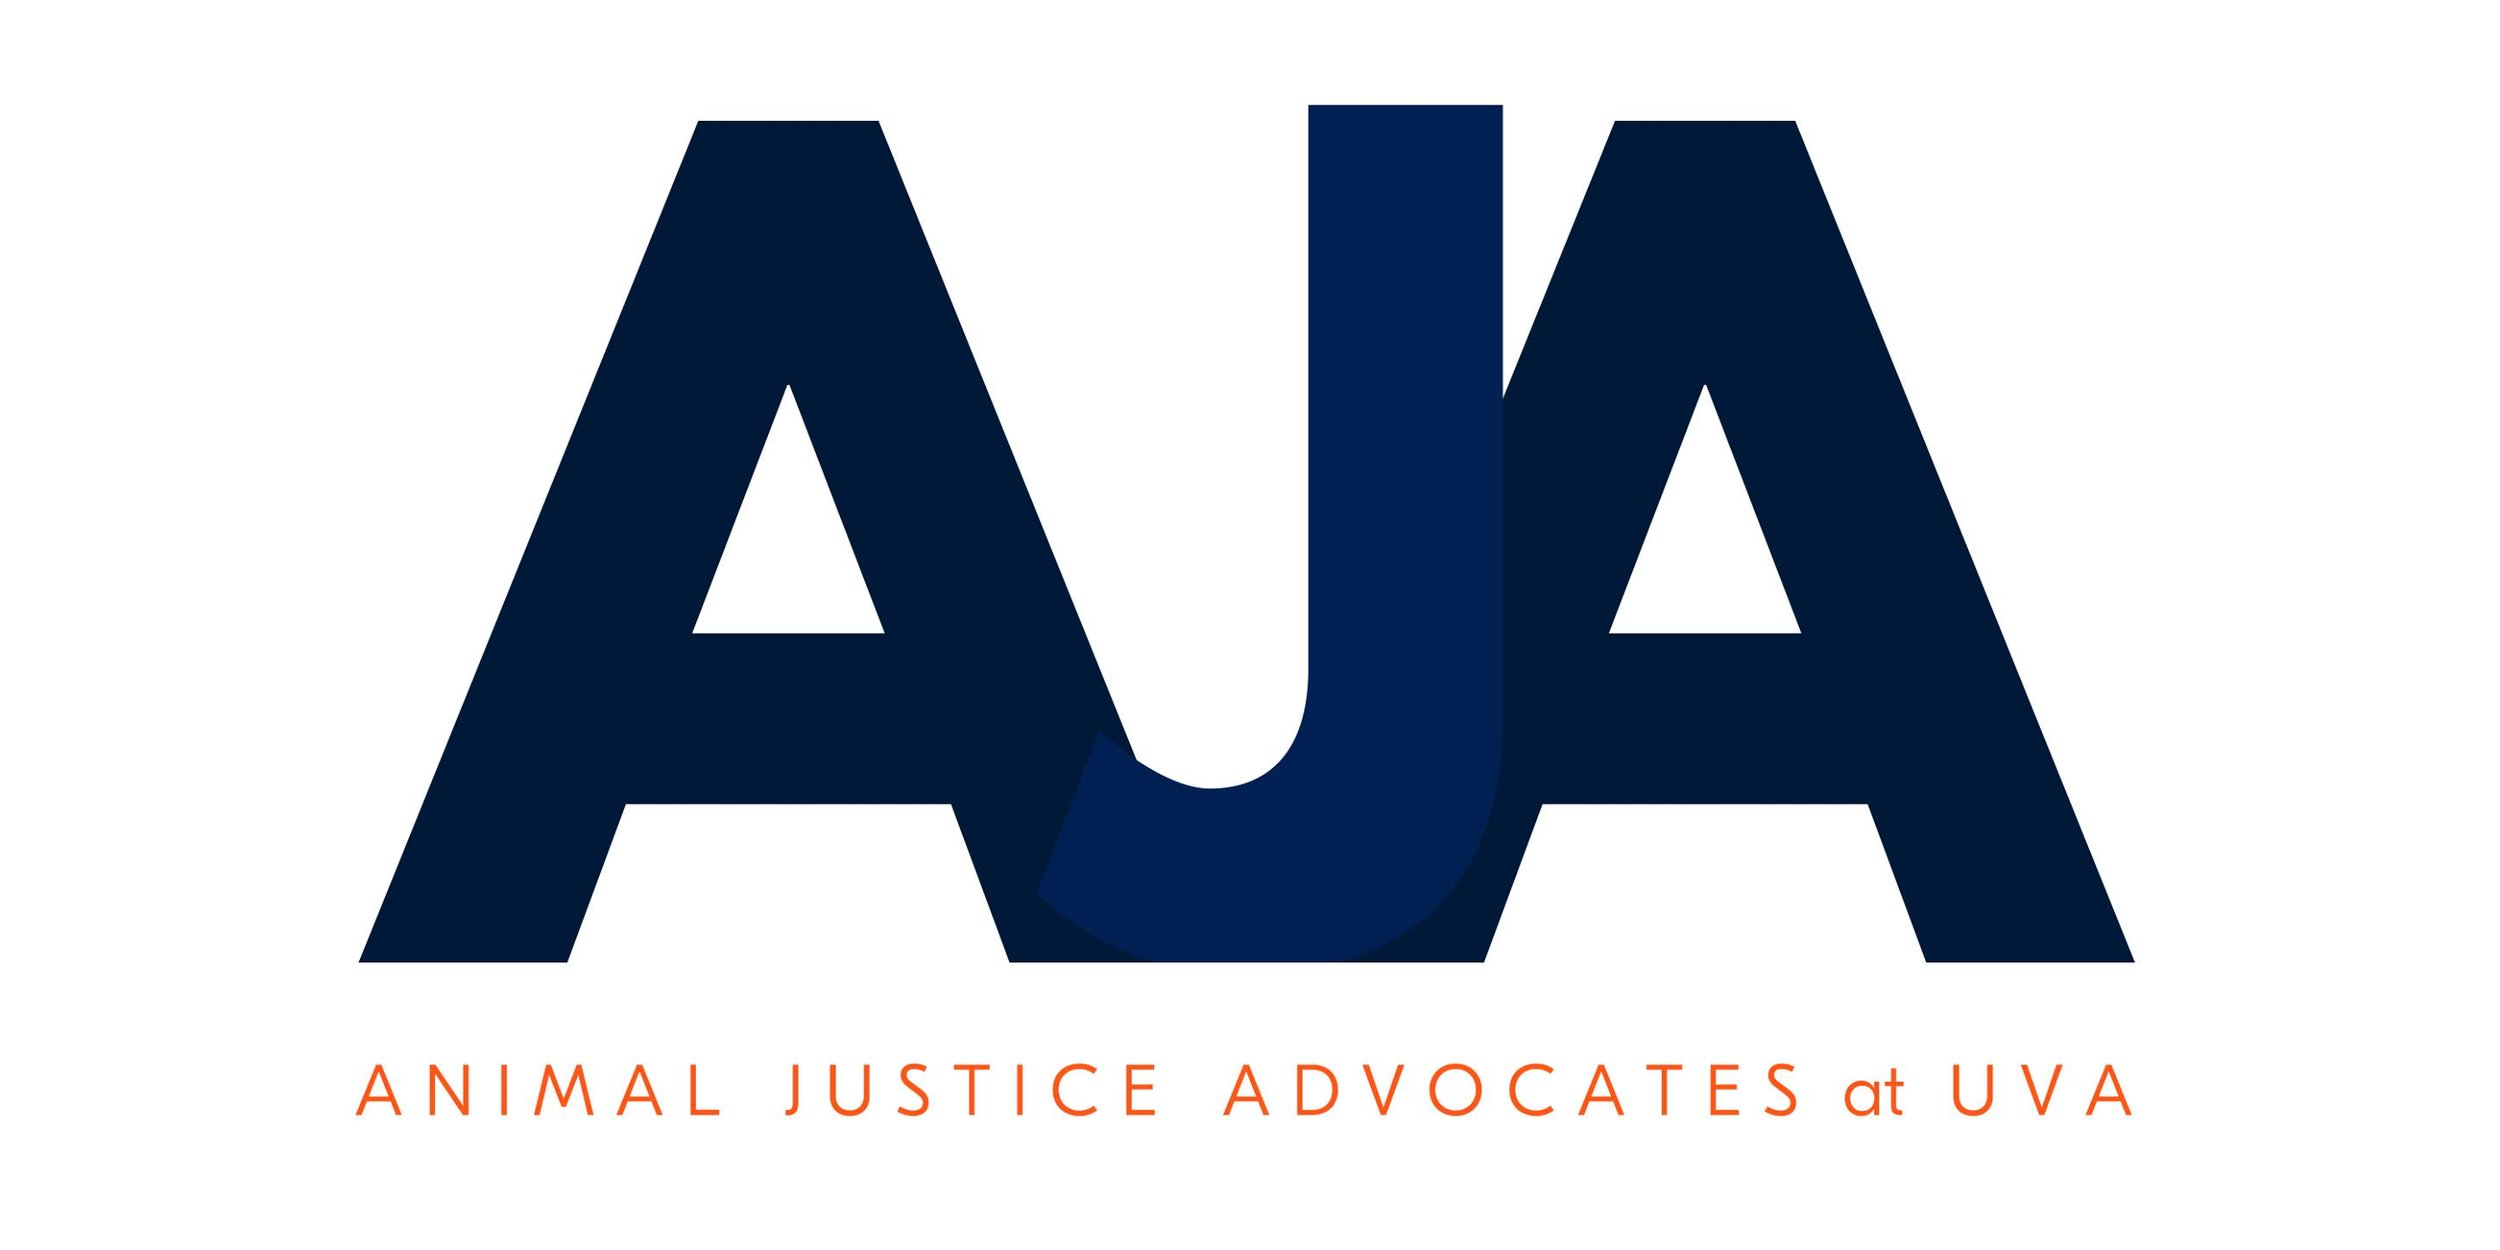 """ANIMAL JUSTICE ADVOCATES at UVA  """"Advocating for education without violence at the University of Virginia."""""""